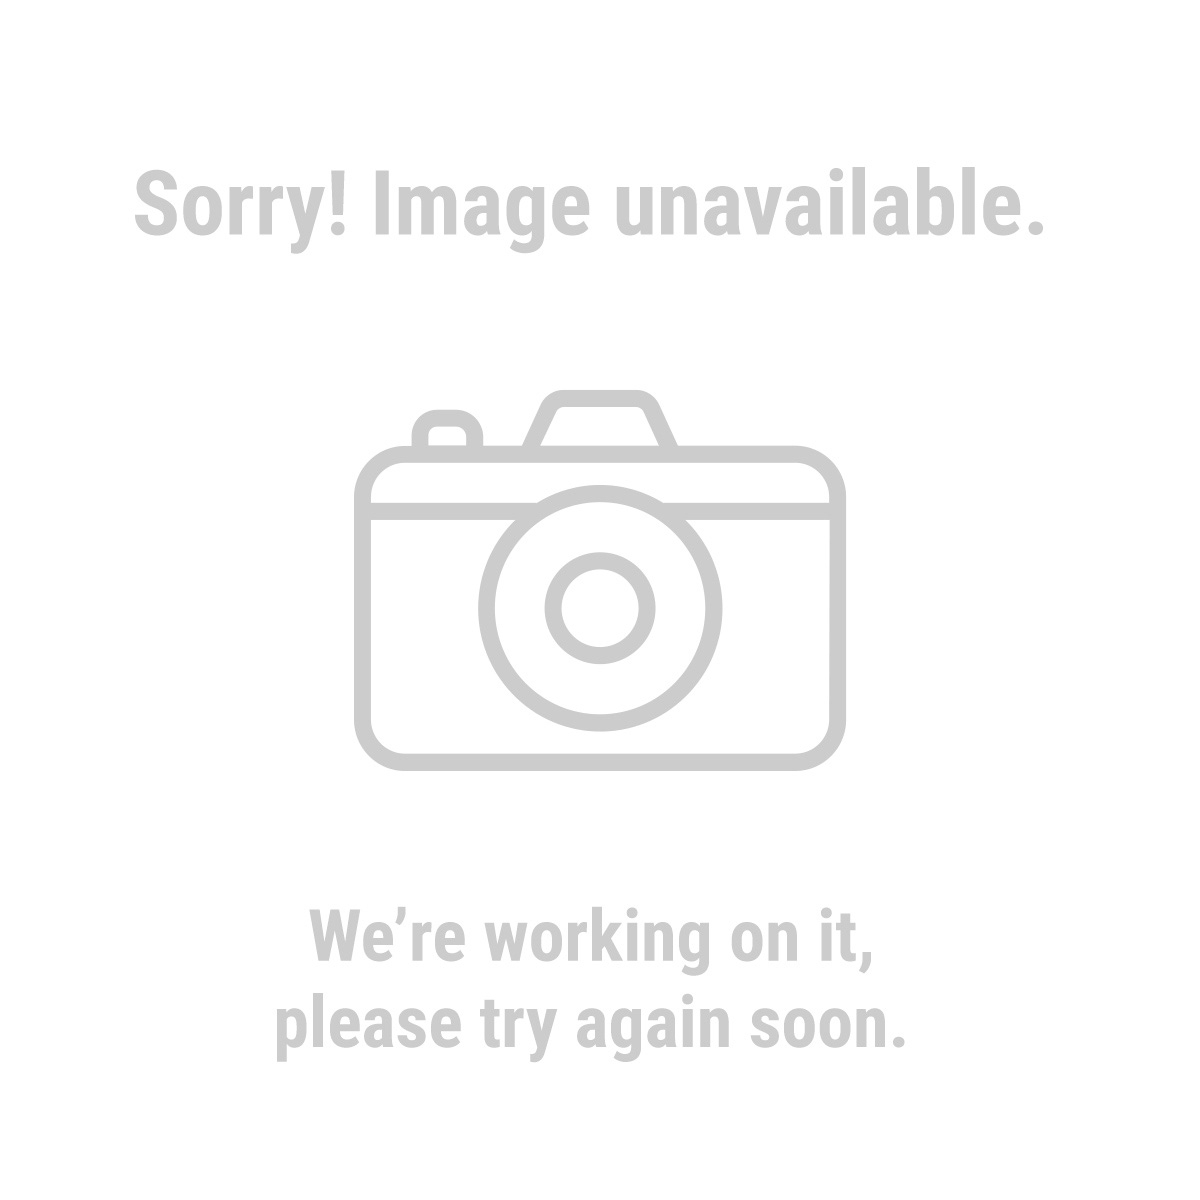 Cen-Tech® 61894 Non-Contact Infrared Thermometer With Laser Targeting